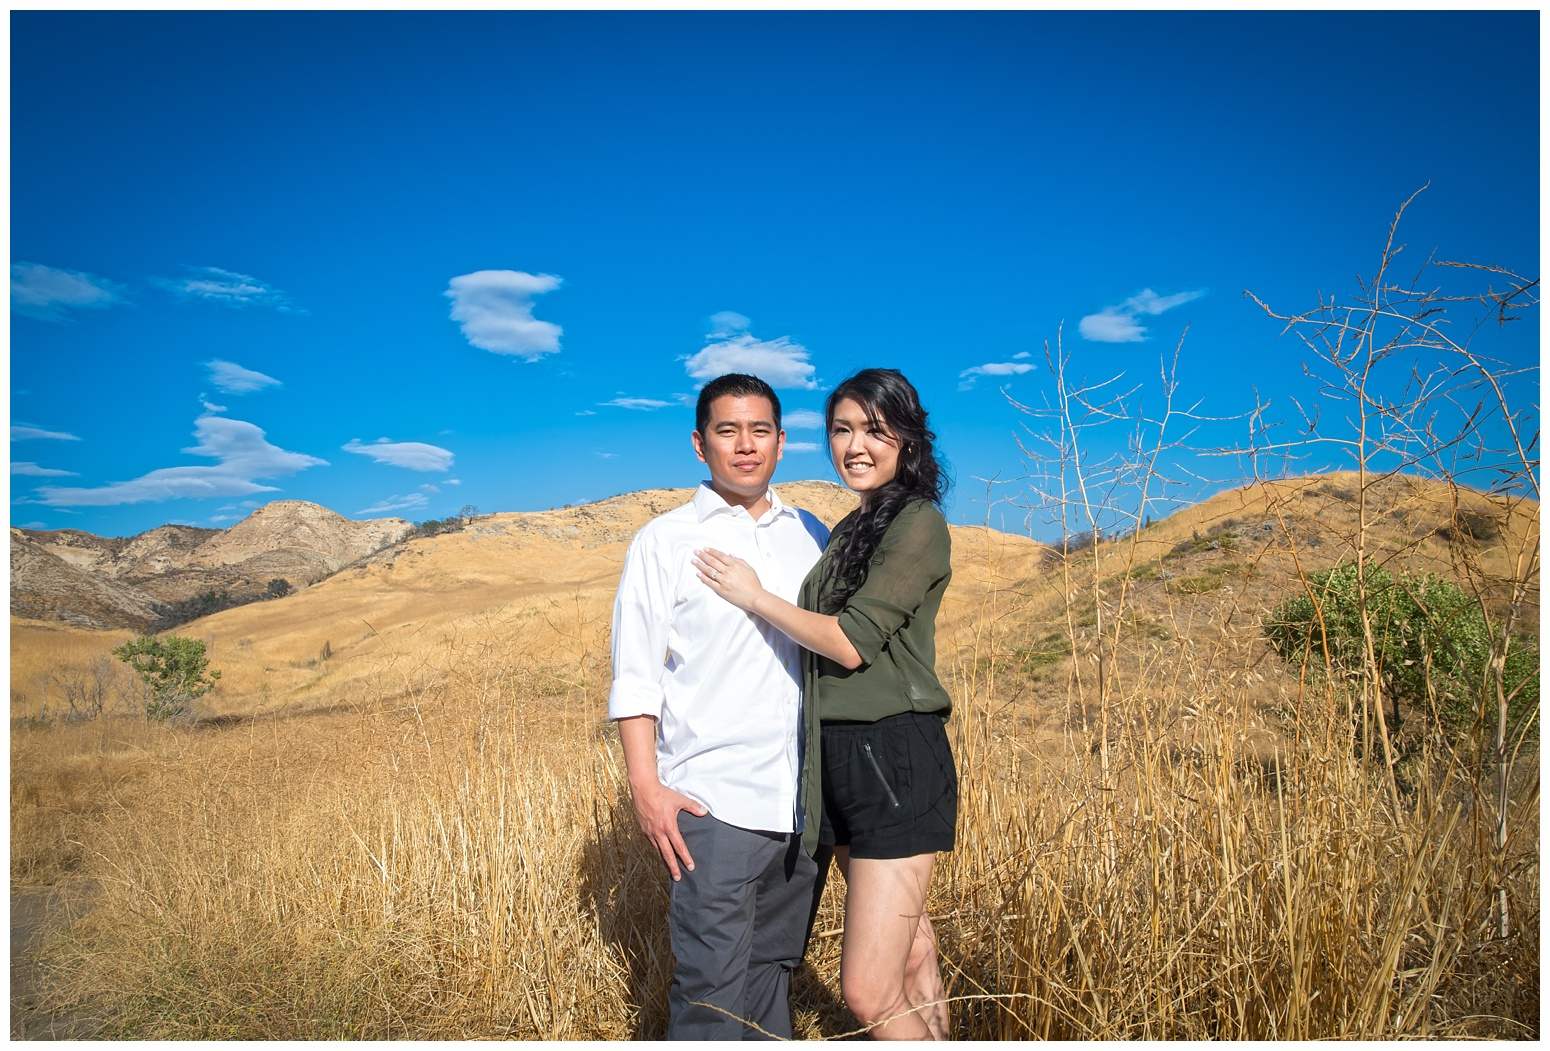 Vasquez Rocks Engagement_0001.jpg